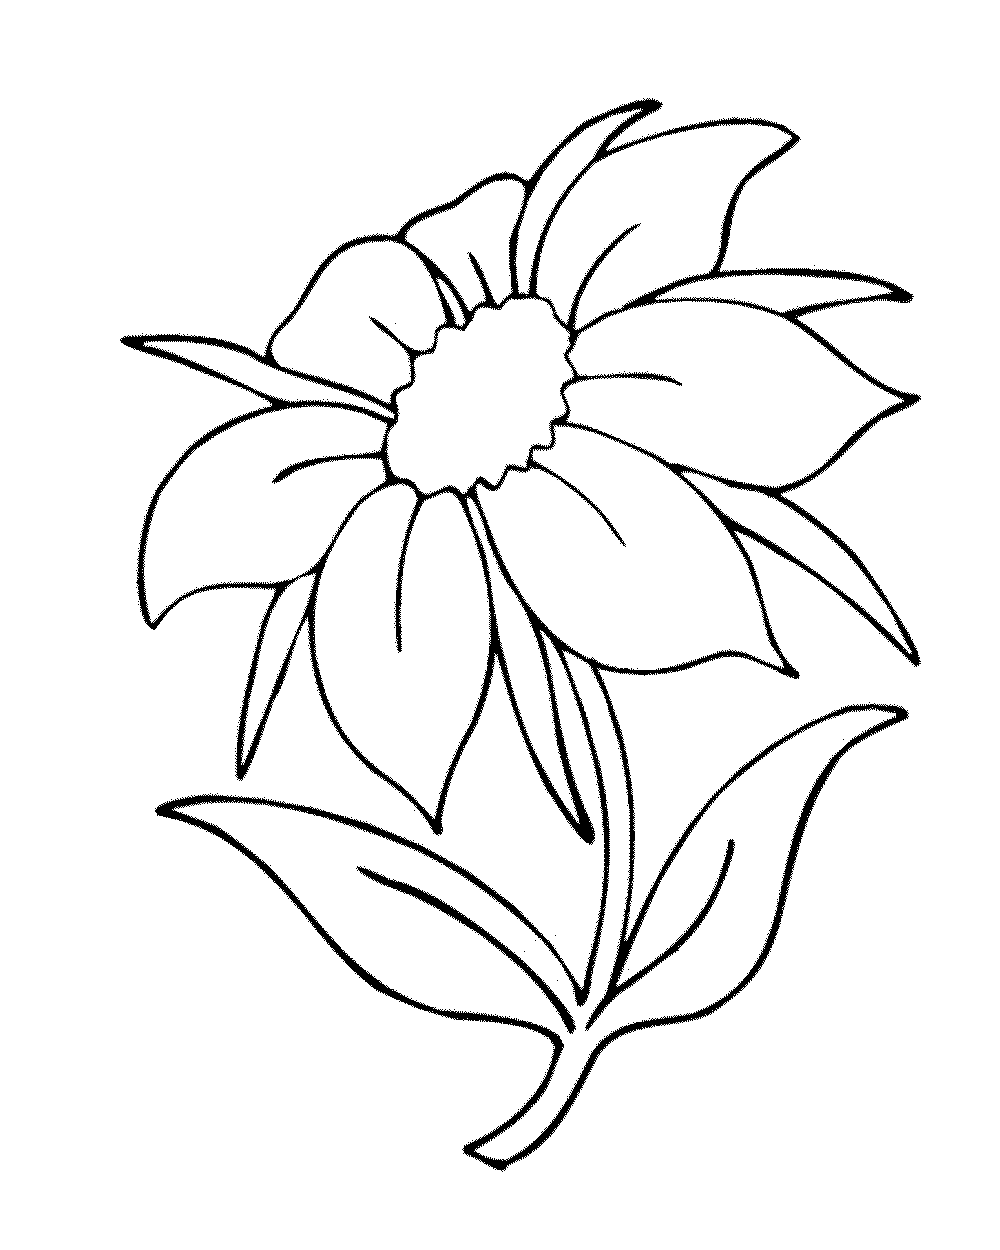 printable simple flower coloring pages flower coloring pages part 3 pages simple coloring printable flower